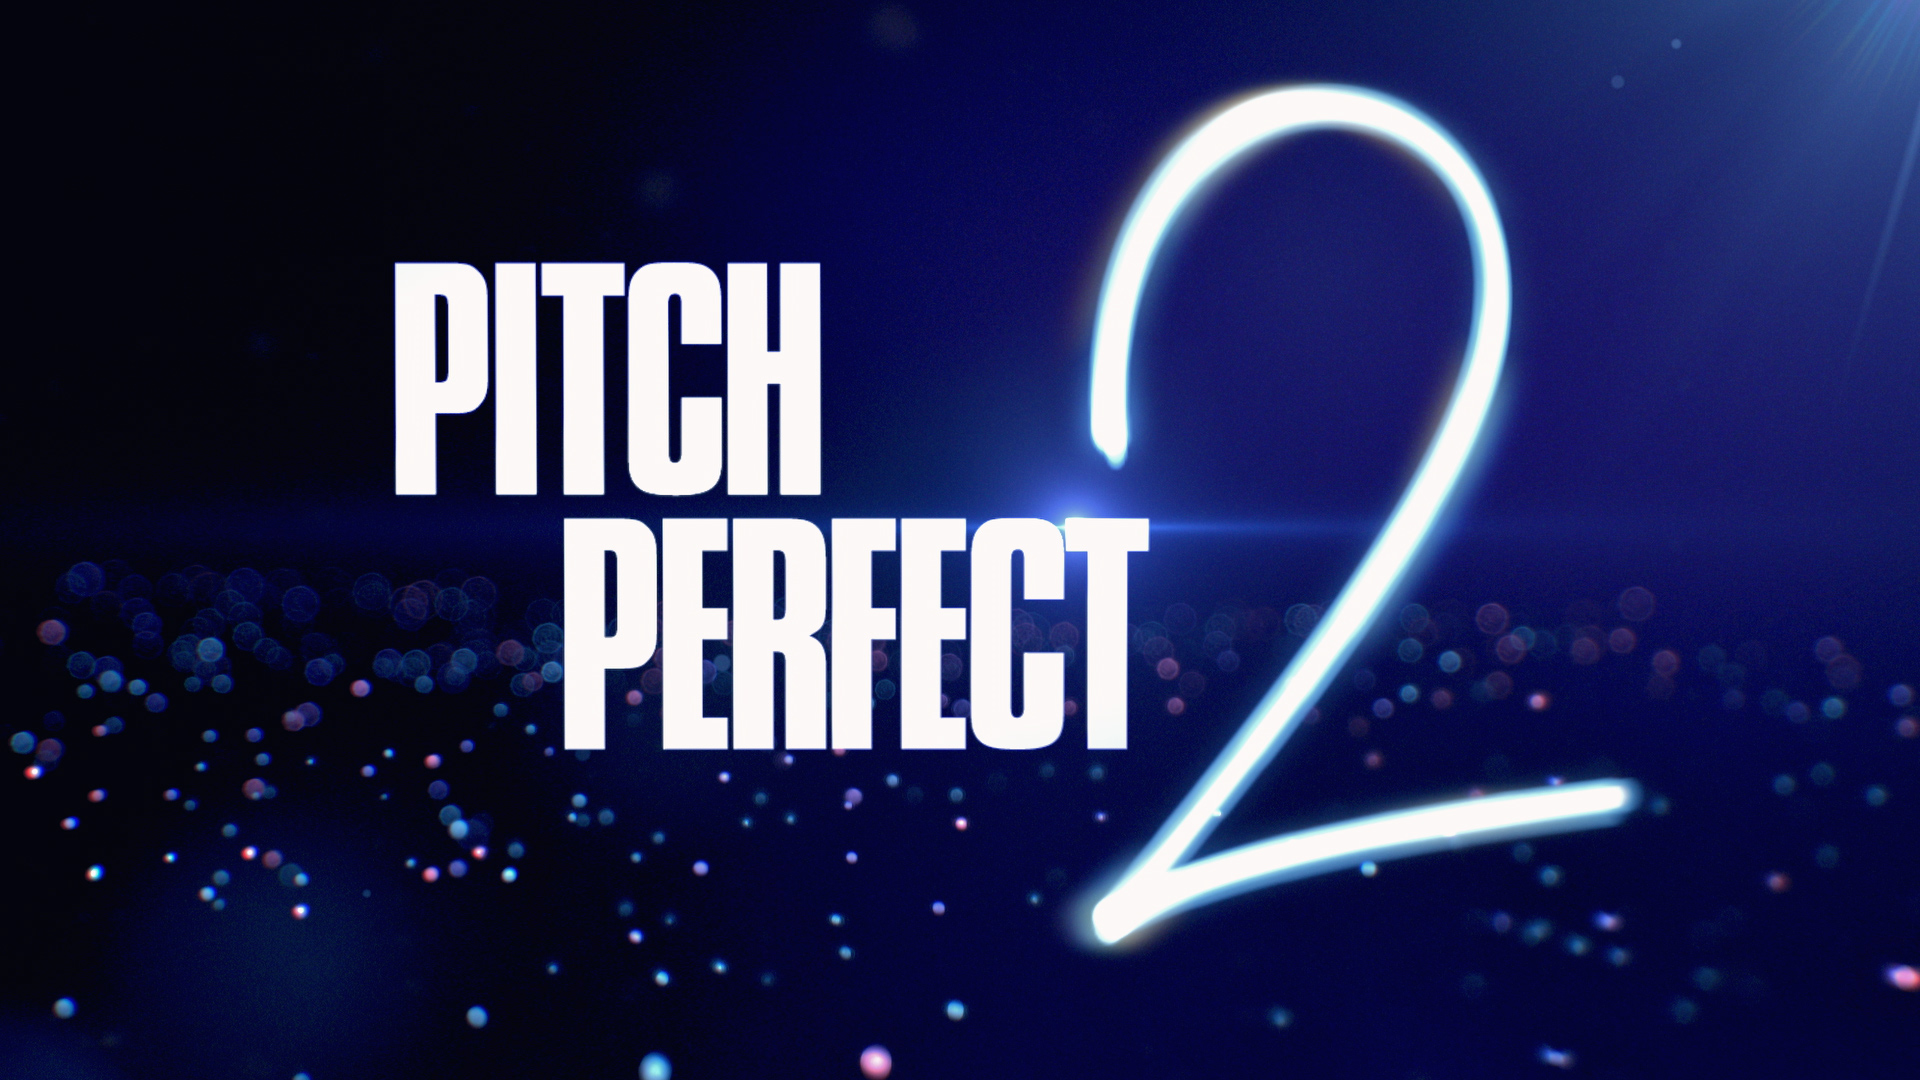 PITCH PERFECT 2  film titles